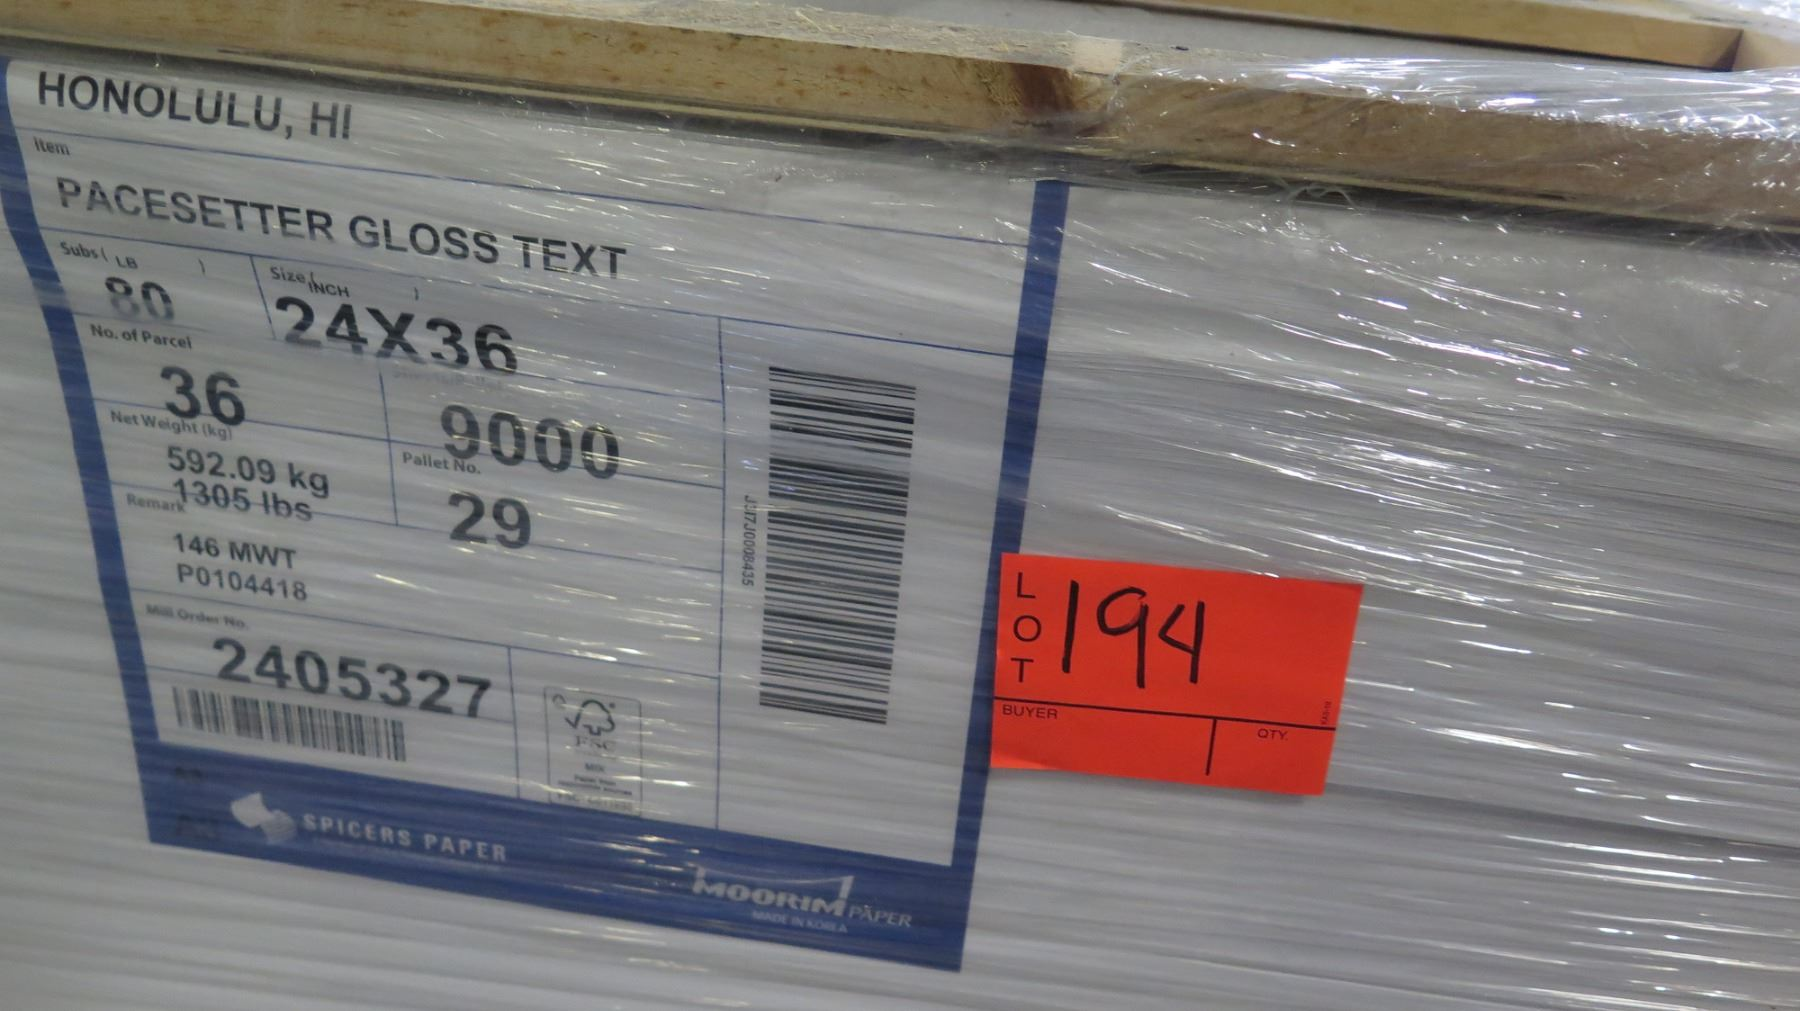 Qty 2 Pallets Pacesetter Gloss Text 24 x 36 & 28 x 40 Paper - Oahu